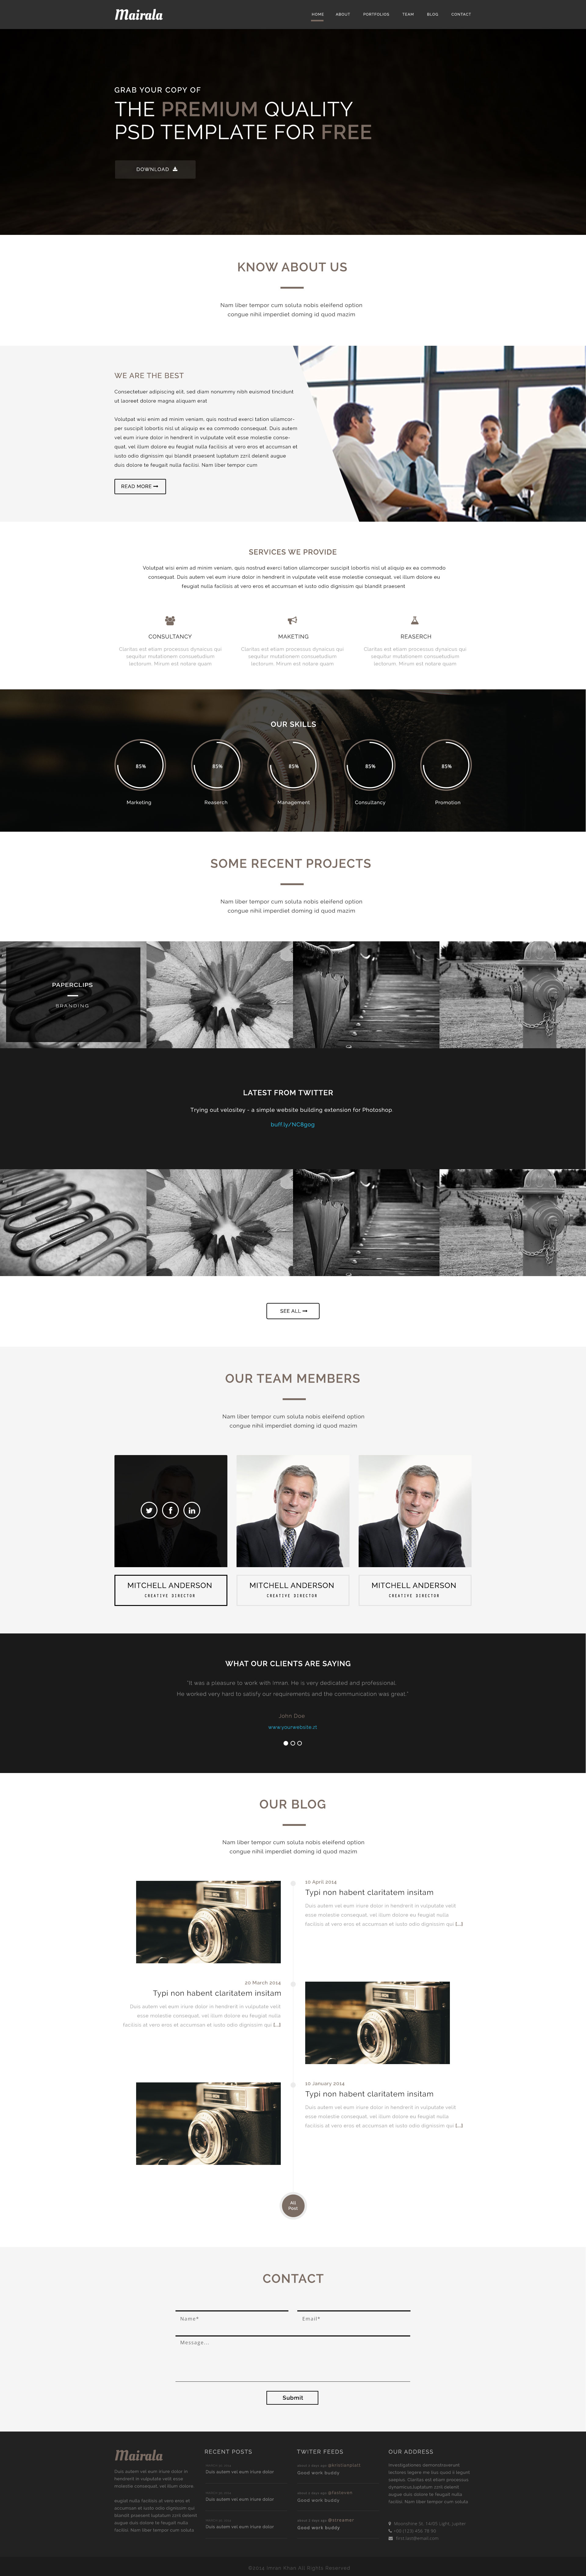 MAIRALA - Free One Page Corporate Agency PSD Template | Free HTML5 ...